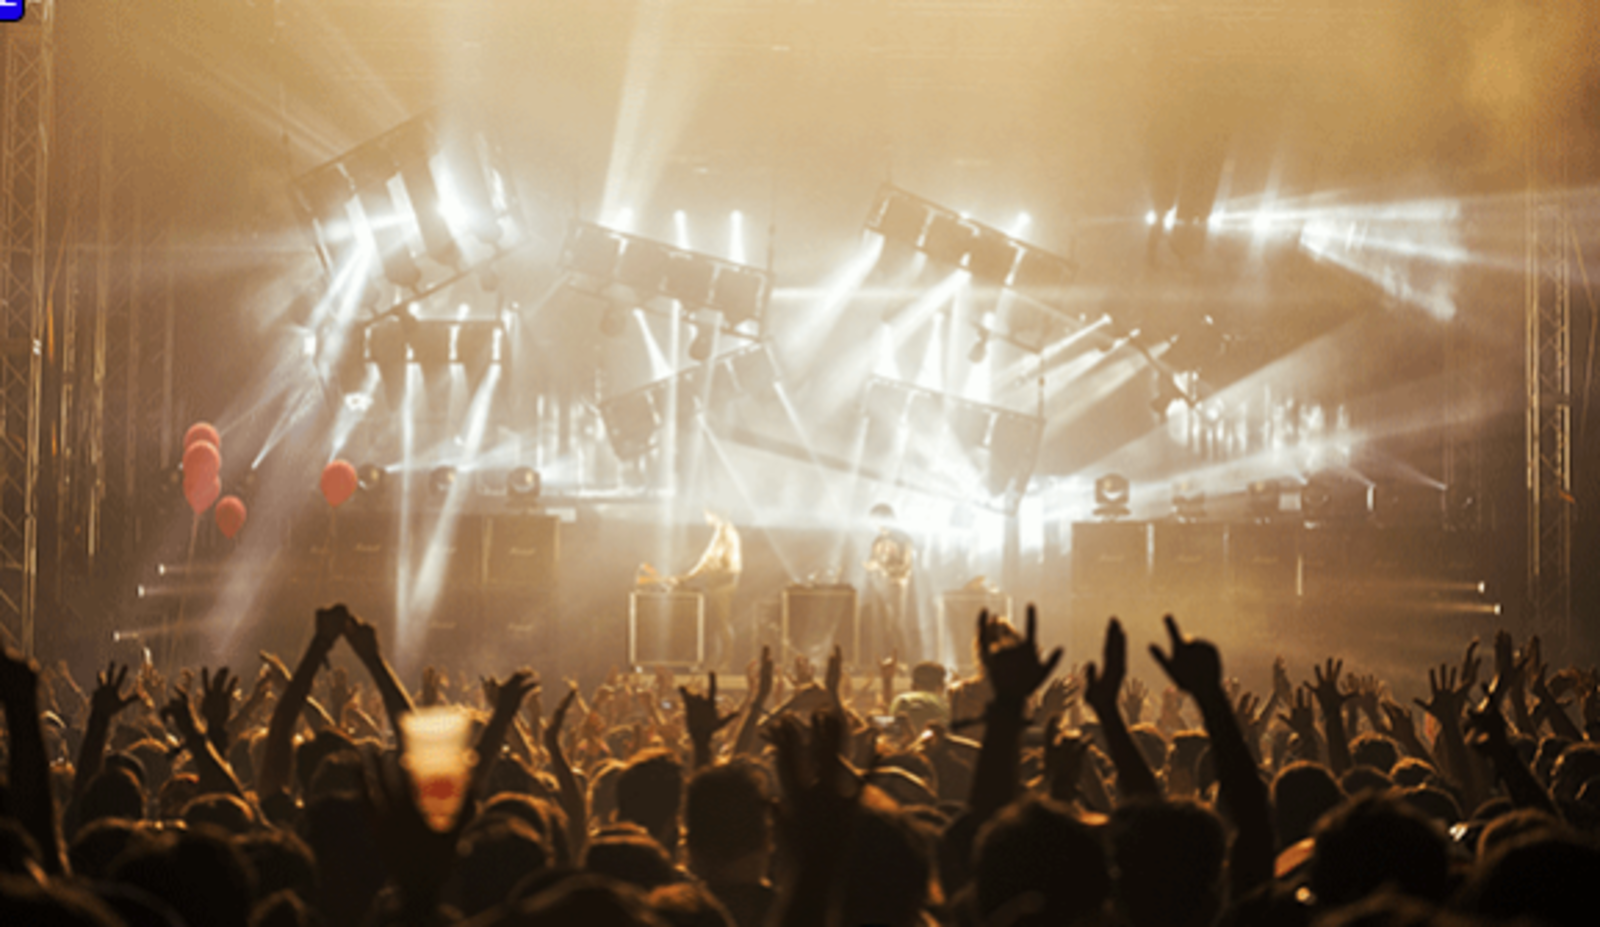 SonarSocials: follow all the action from the festival